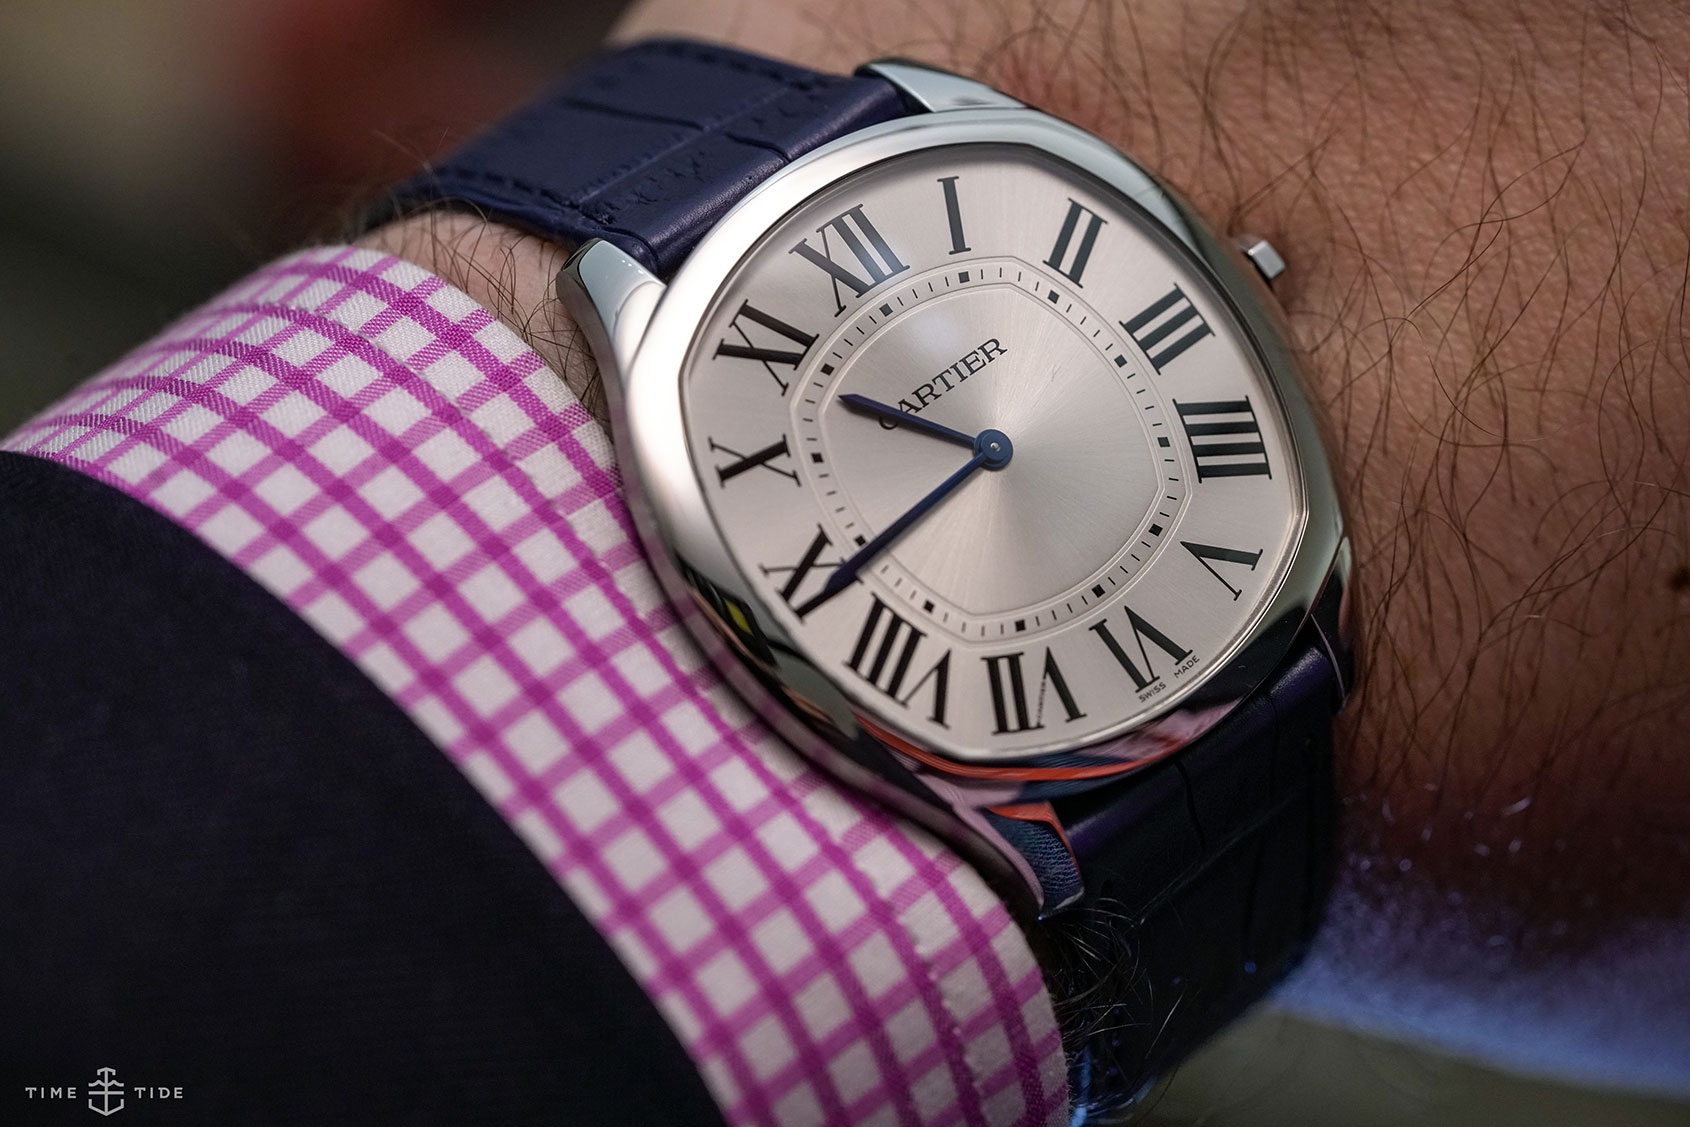 Cartier Watches Video 8 Cartier Watches That Stand Out Time And Tide Watches